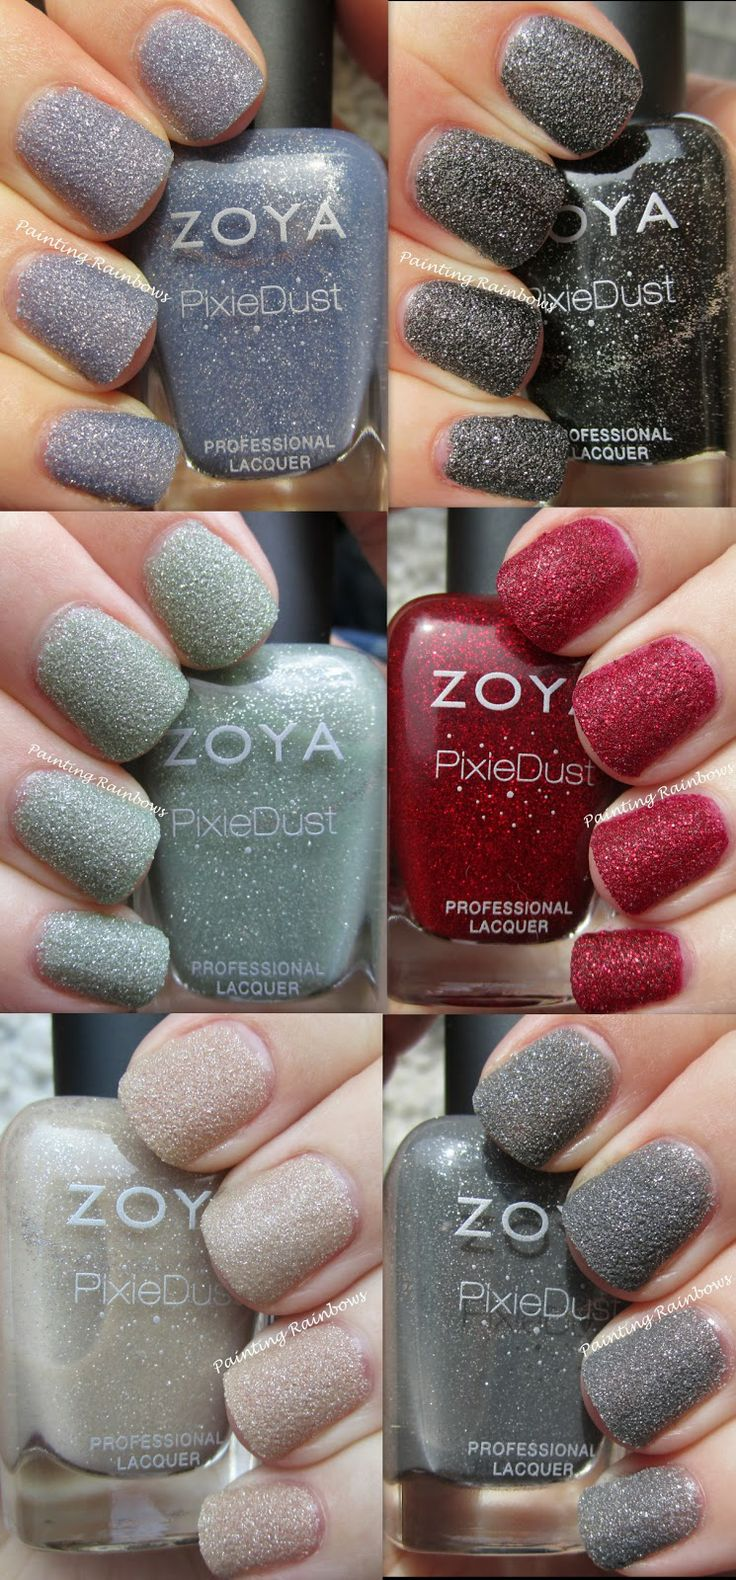 This is my favorite line of polishes right now. They require no base or top coat and are super easy to apply. ~The Veganista Foodie